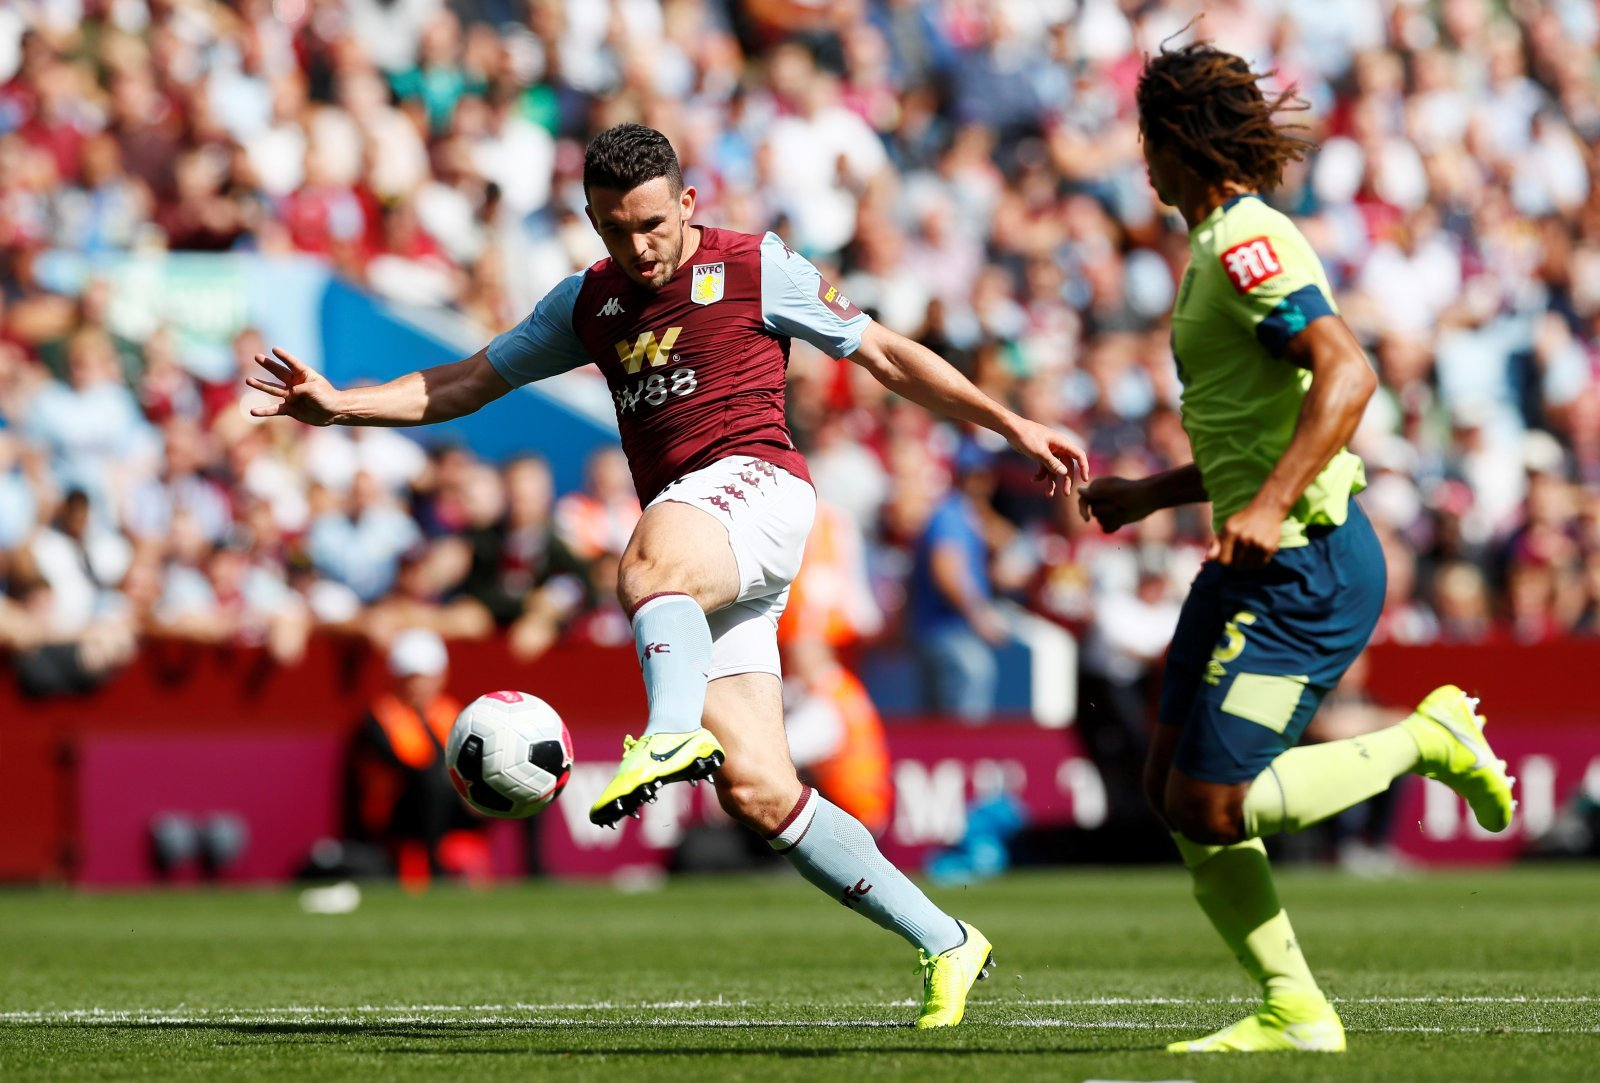 Aston Villa: Fans raving about John McGinn's Premier League performances